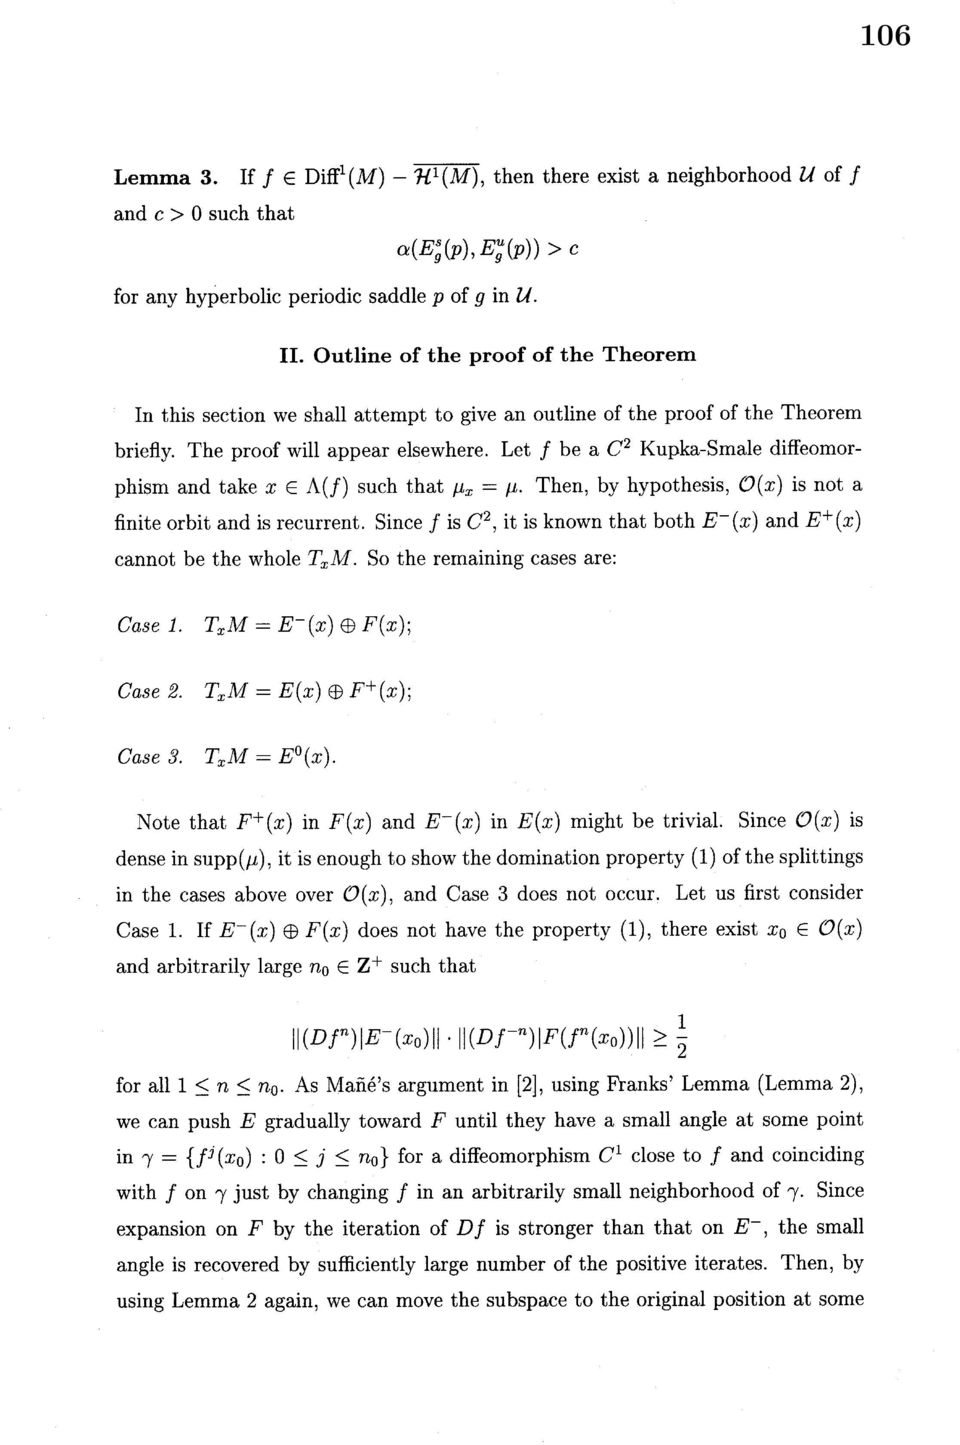 briefly The proof will appear elsewhere Let be a Kupka-Smale diffeomorphism and take such that $x\in\lambda(f)$ $\mathcal{o}(x)$ $f$ $C^{2}$ $\mu_{x}=\mu$ Then, by hypothesis, is not a finite orbit